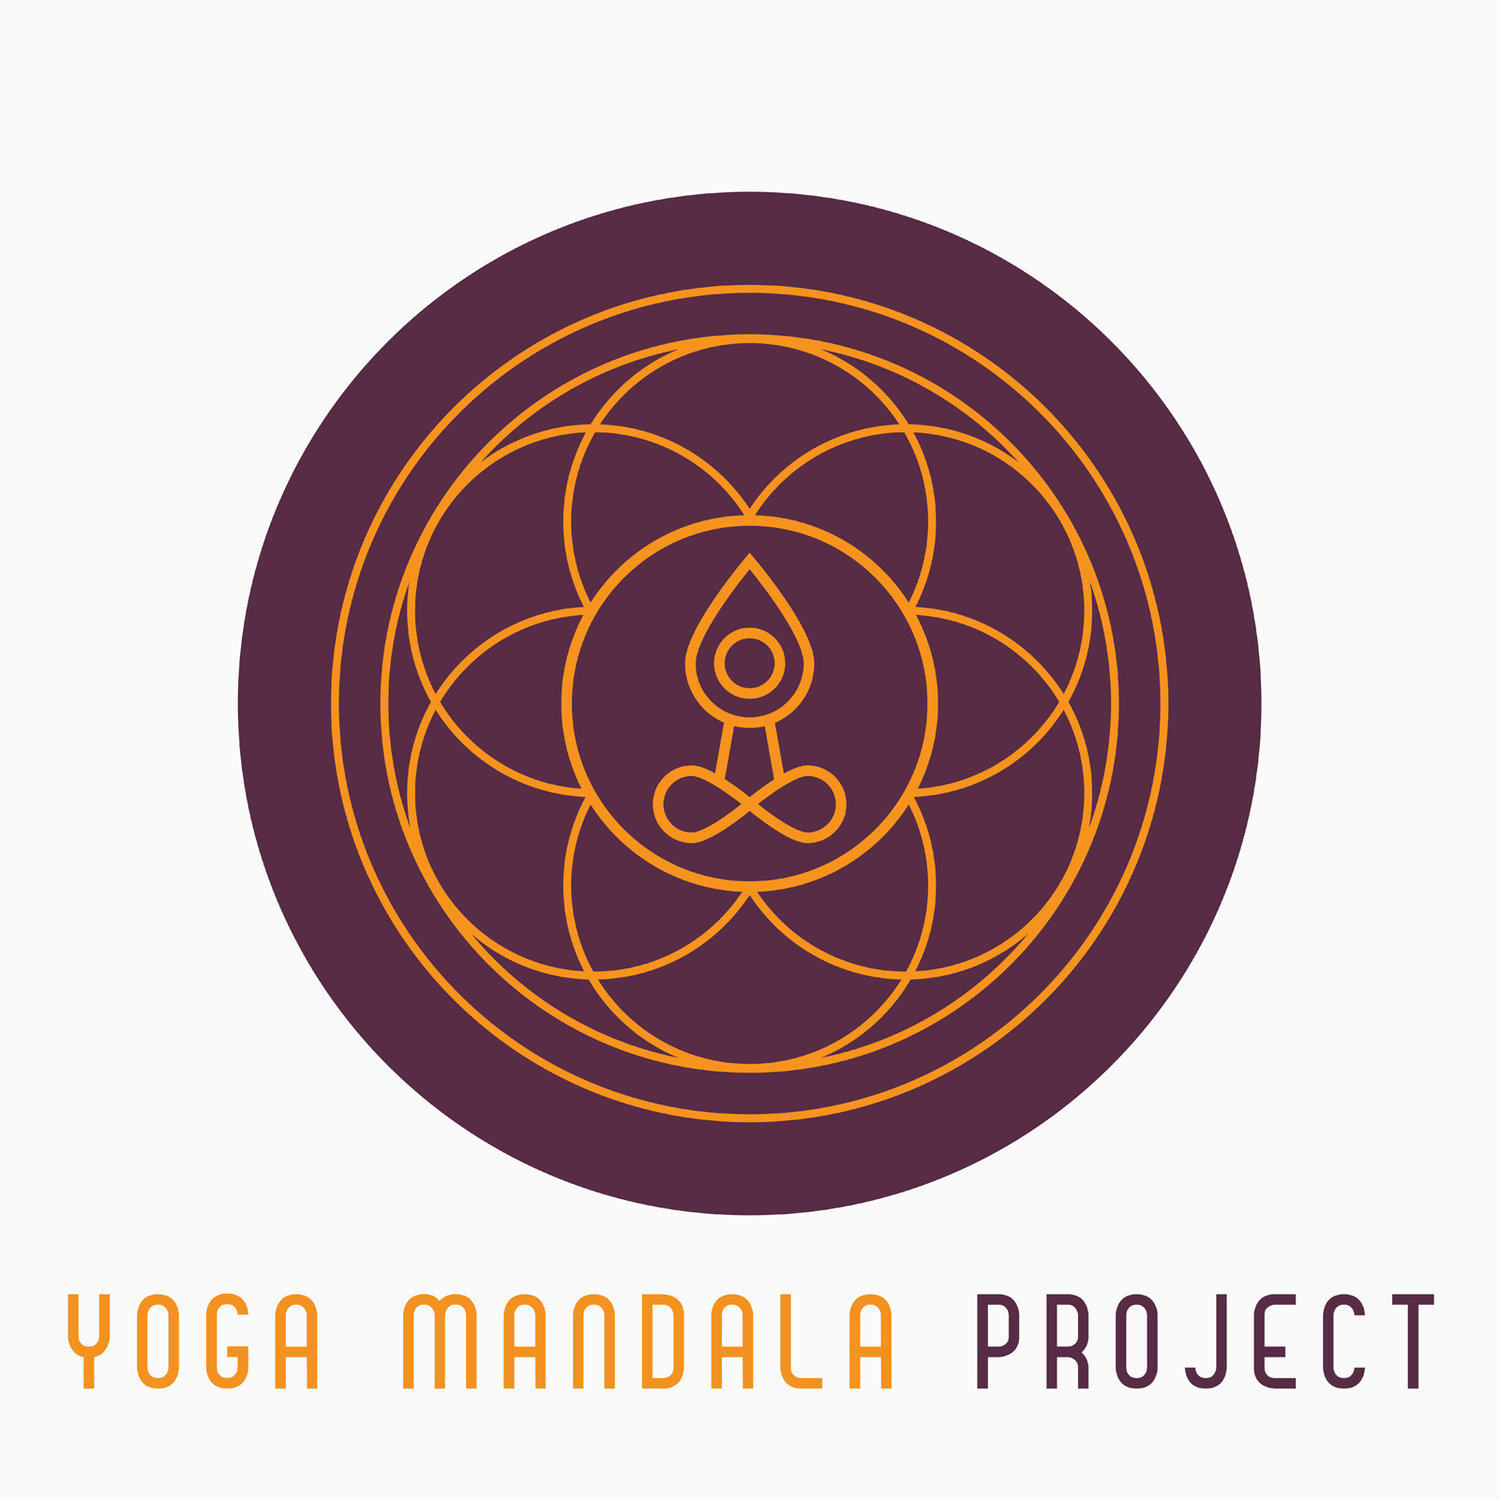 Yoga Mandala Project